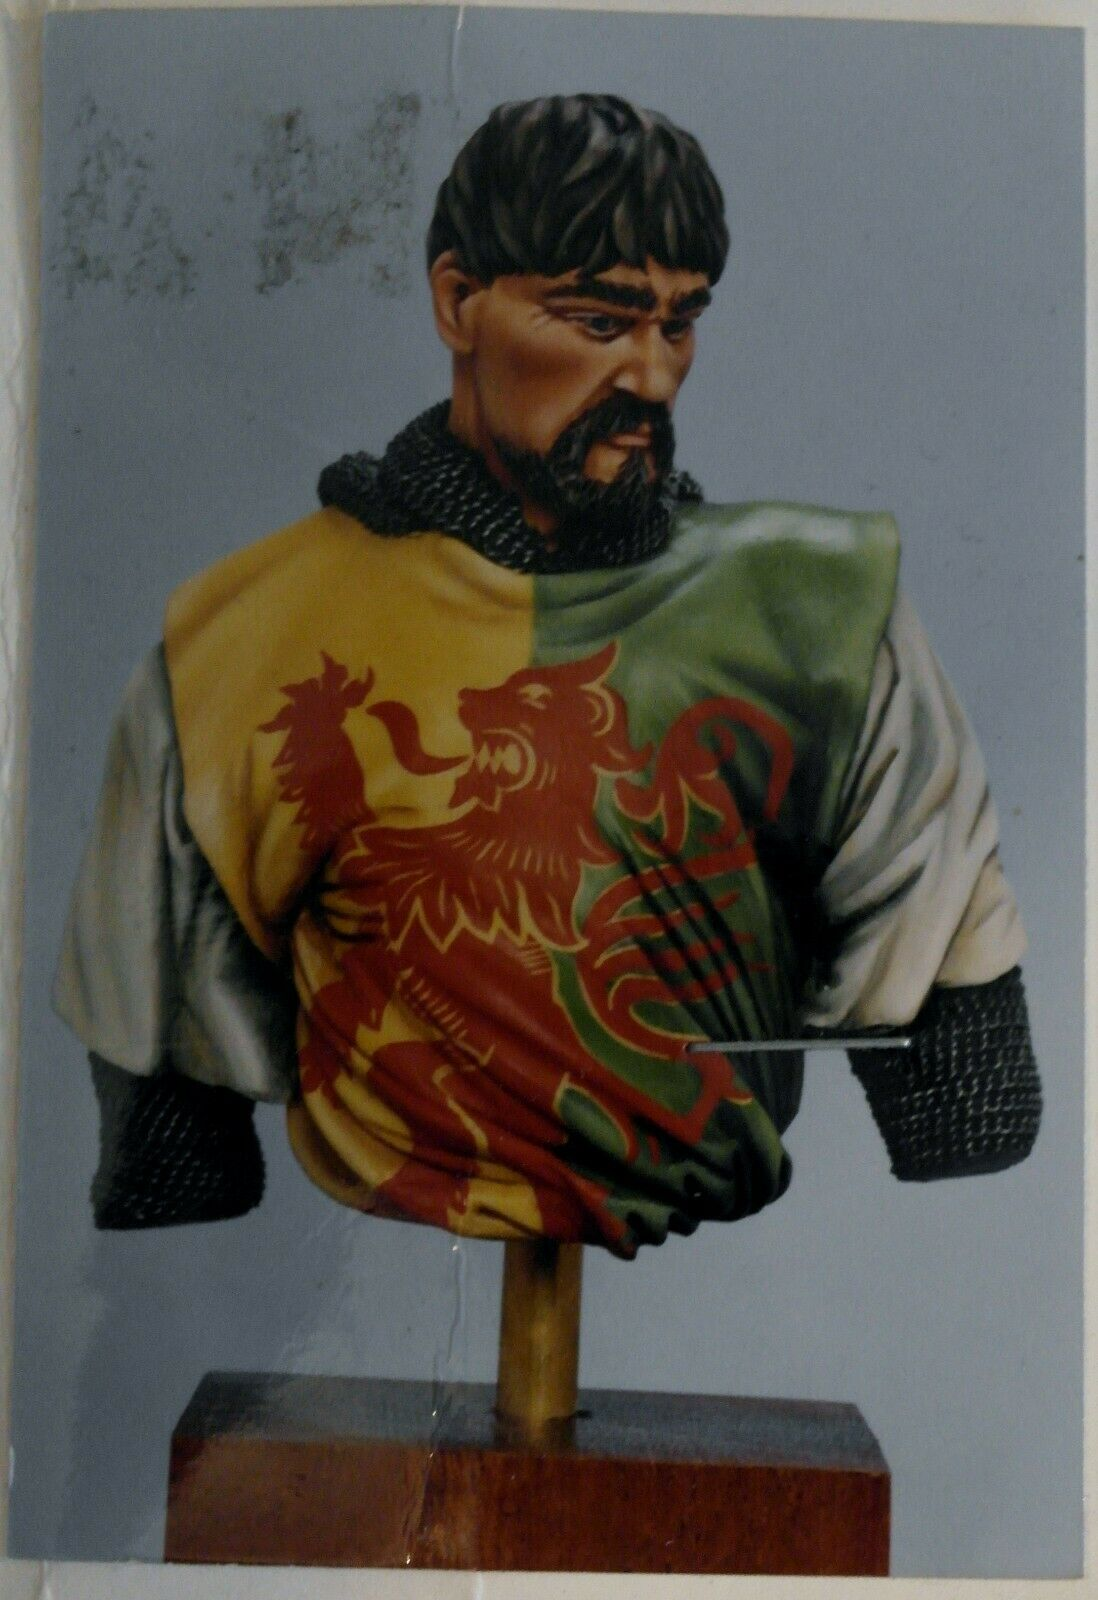 CELTIC MODELS   NORMAN KNIGHT BUST 90-120 SCALE RESIN KIT